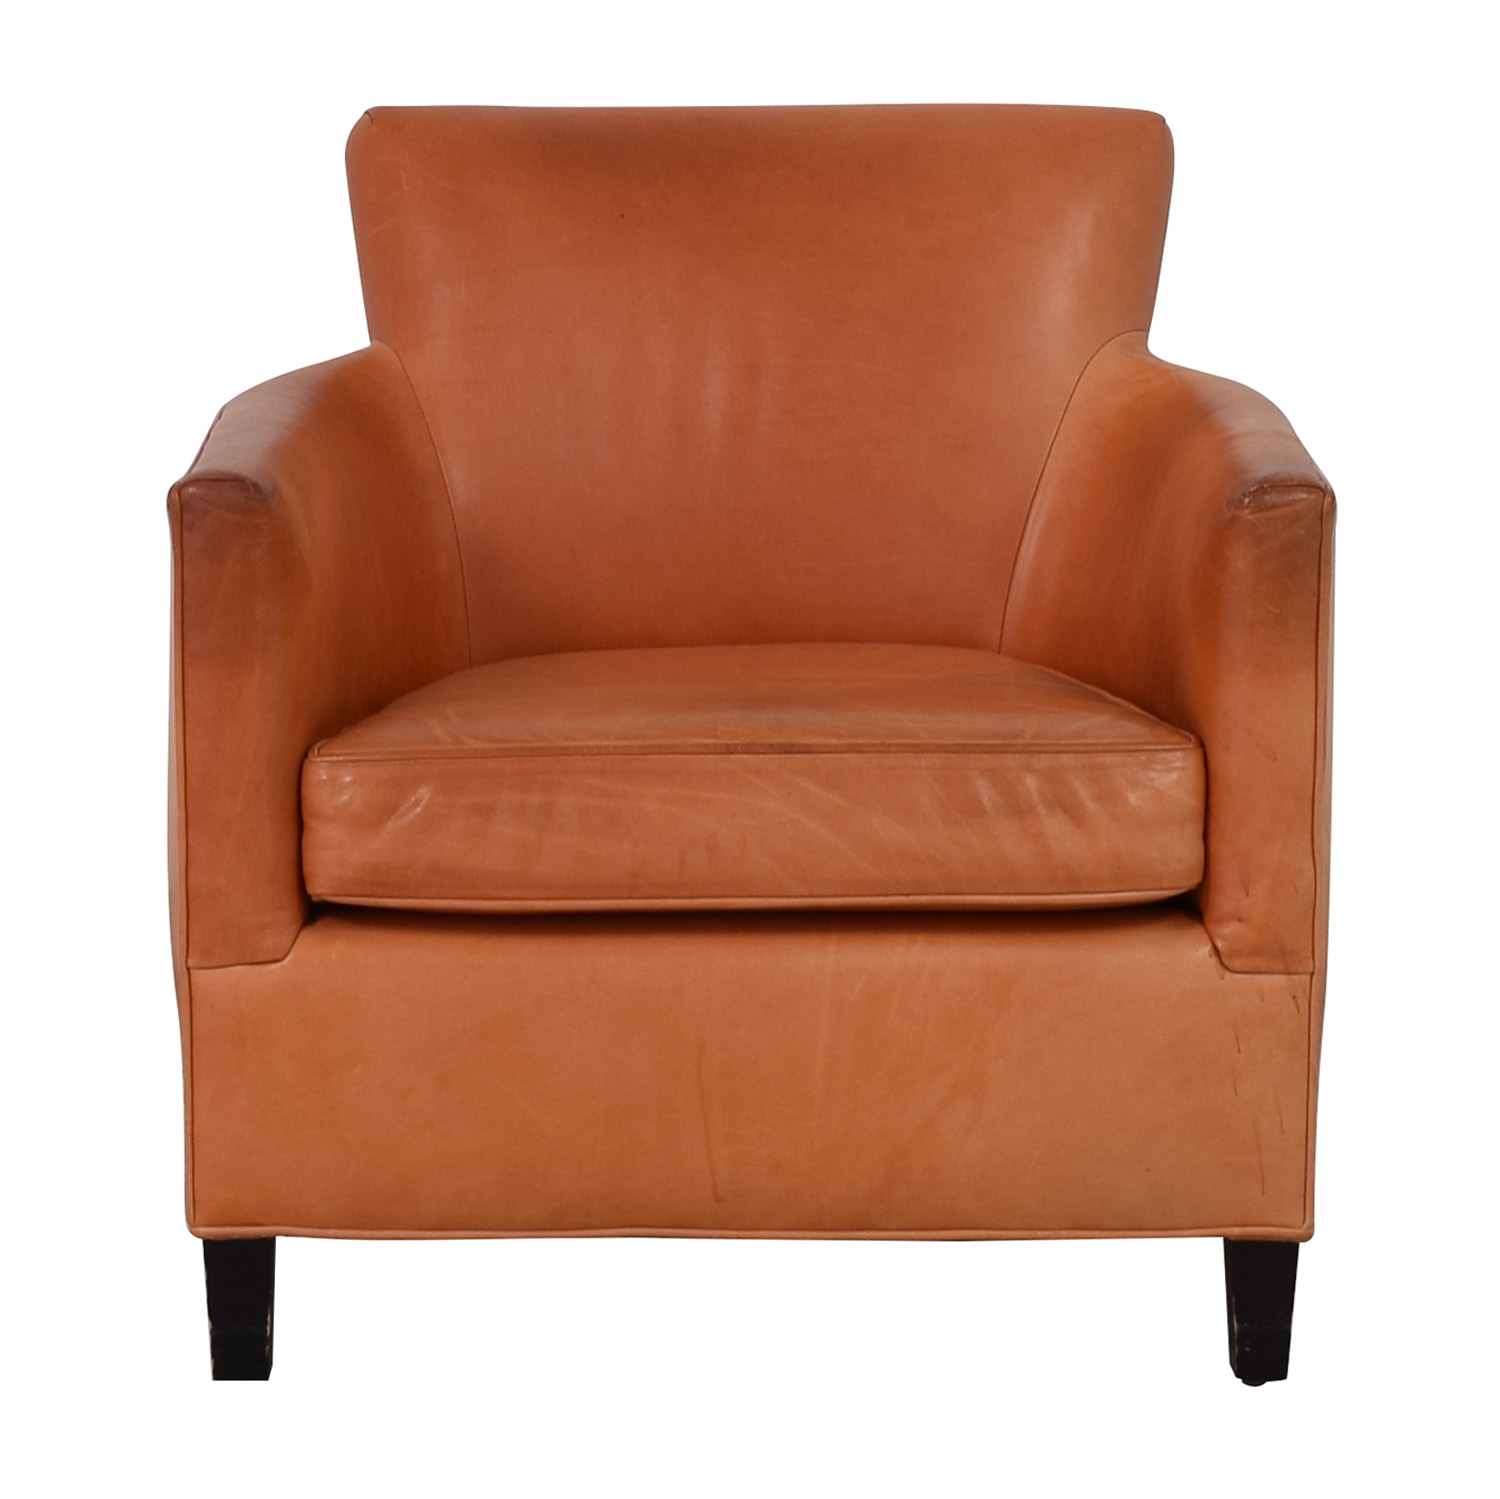 Crate U0026 Barrel Crate U0026 Barrel Orange Accent Chair Discount